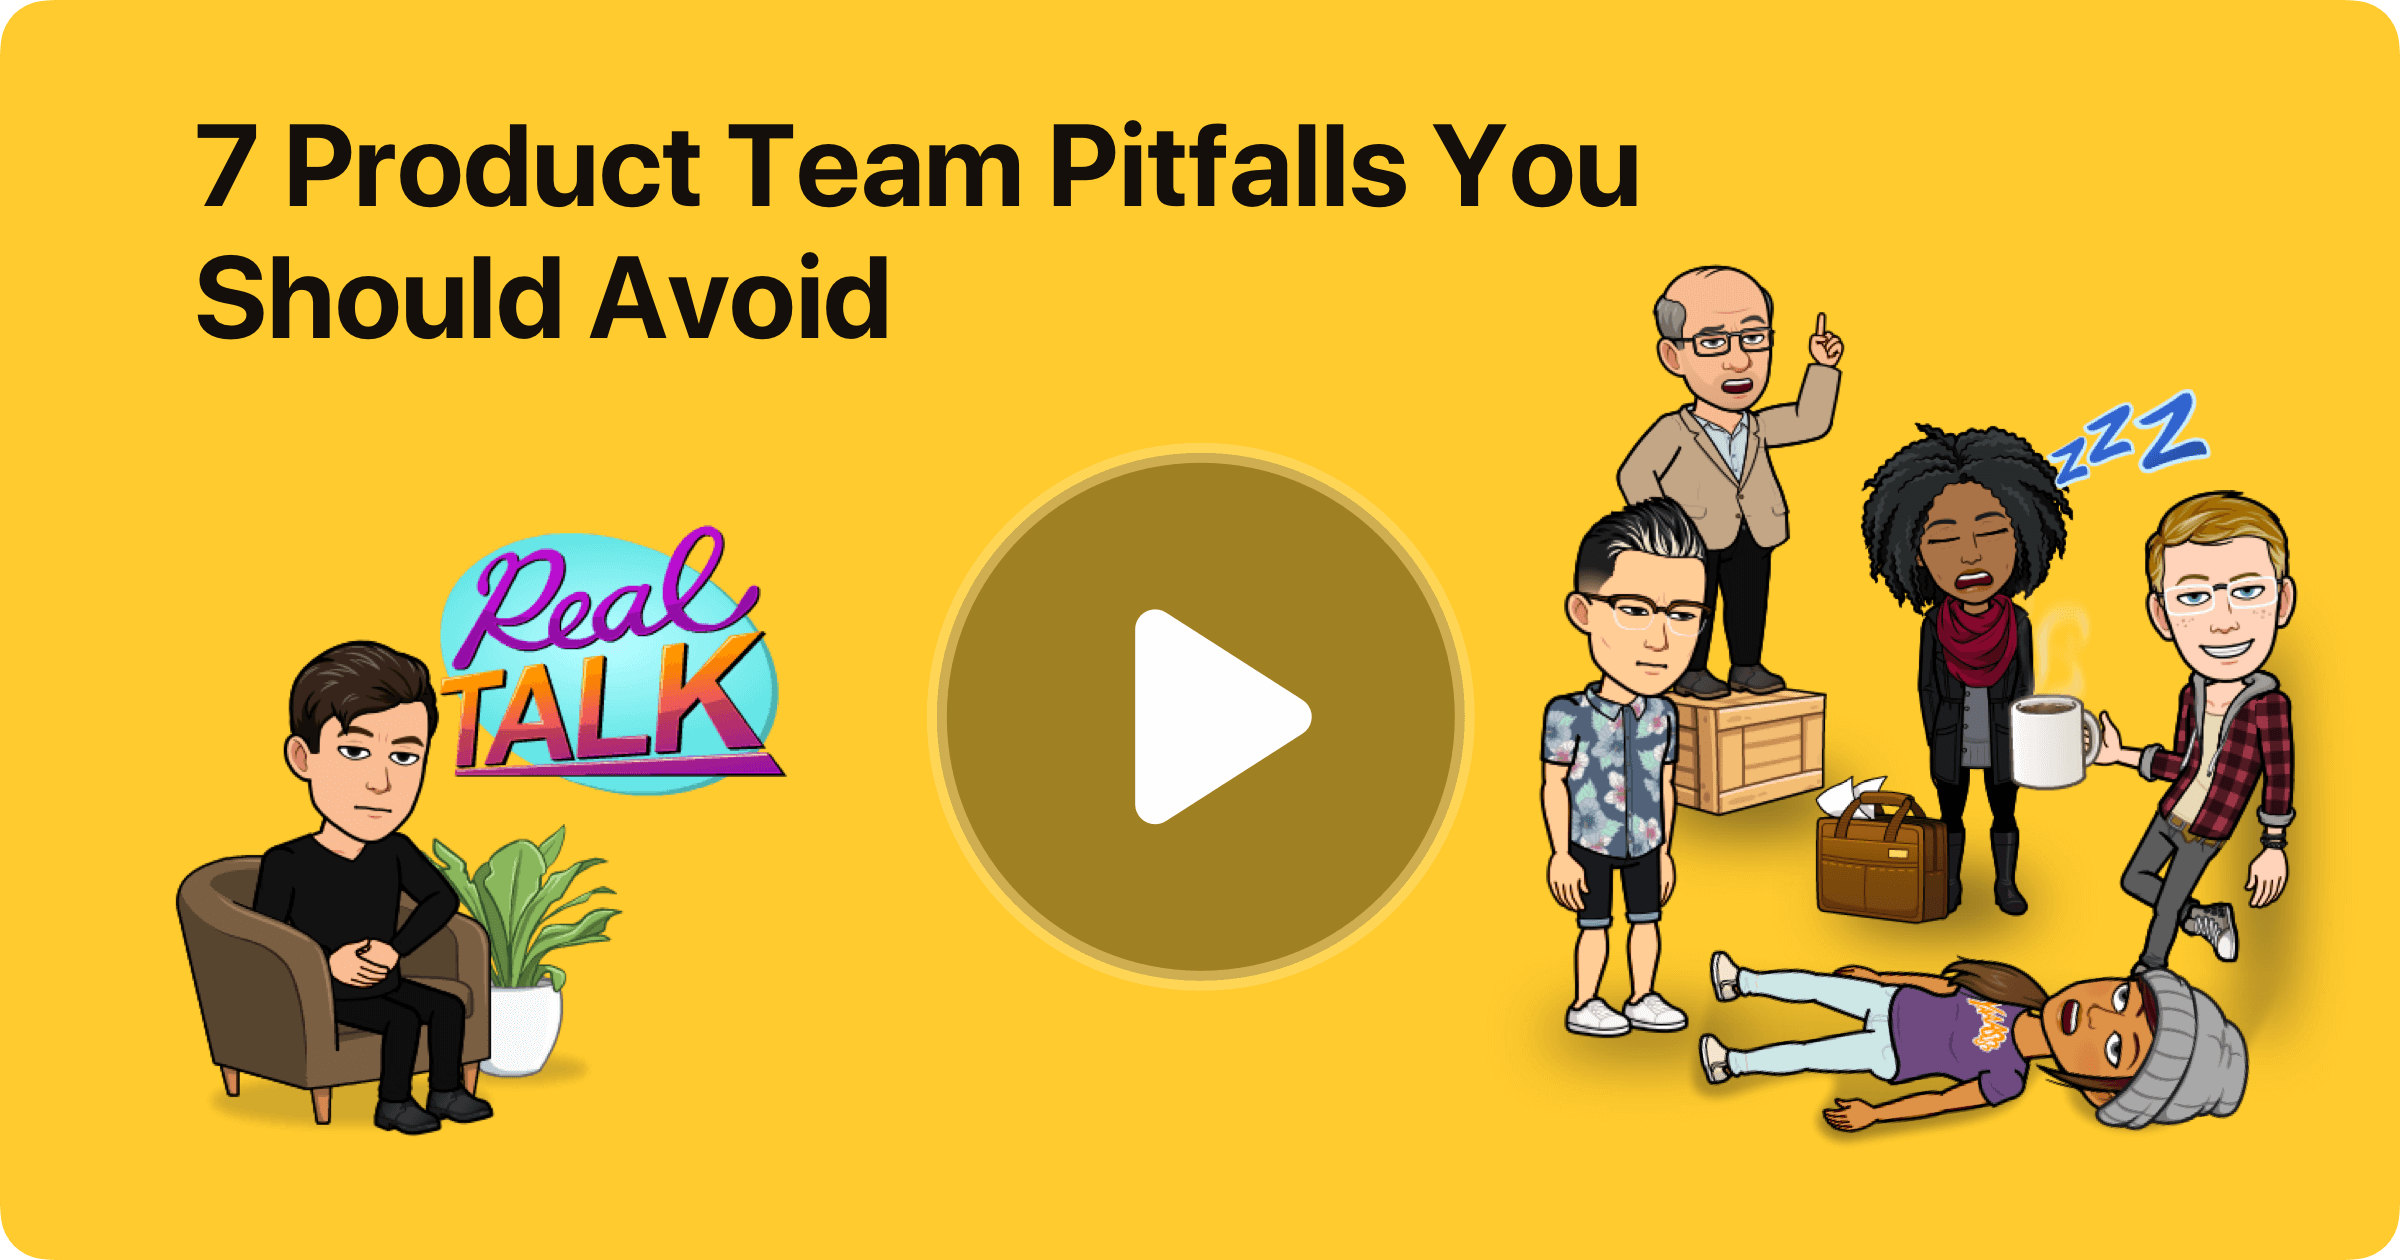 7 Product Team Pitfalls you should avoid